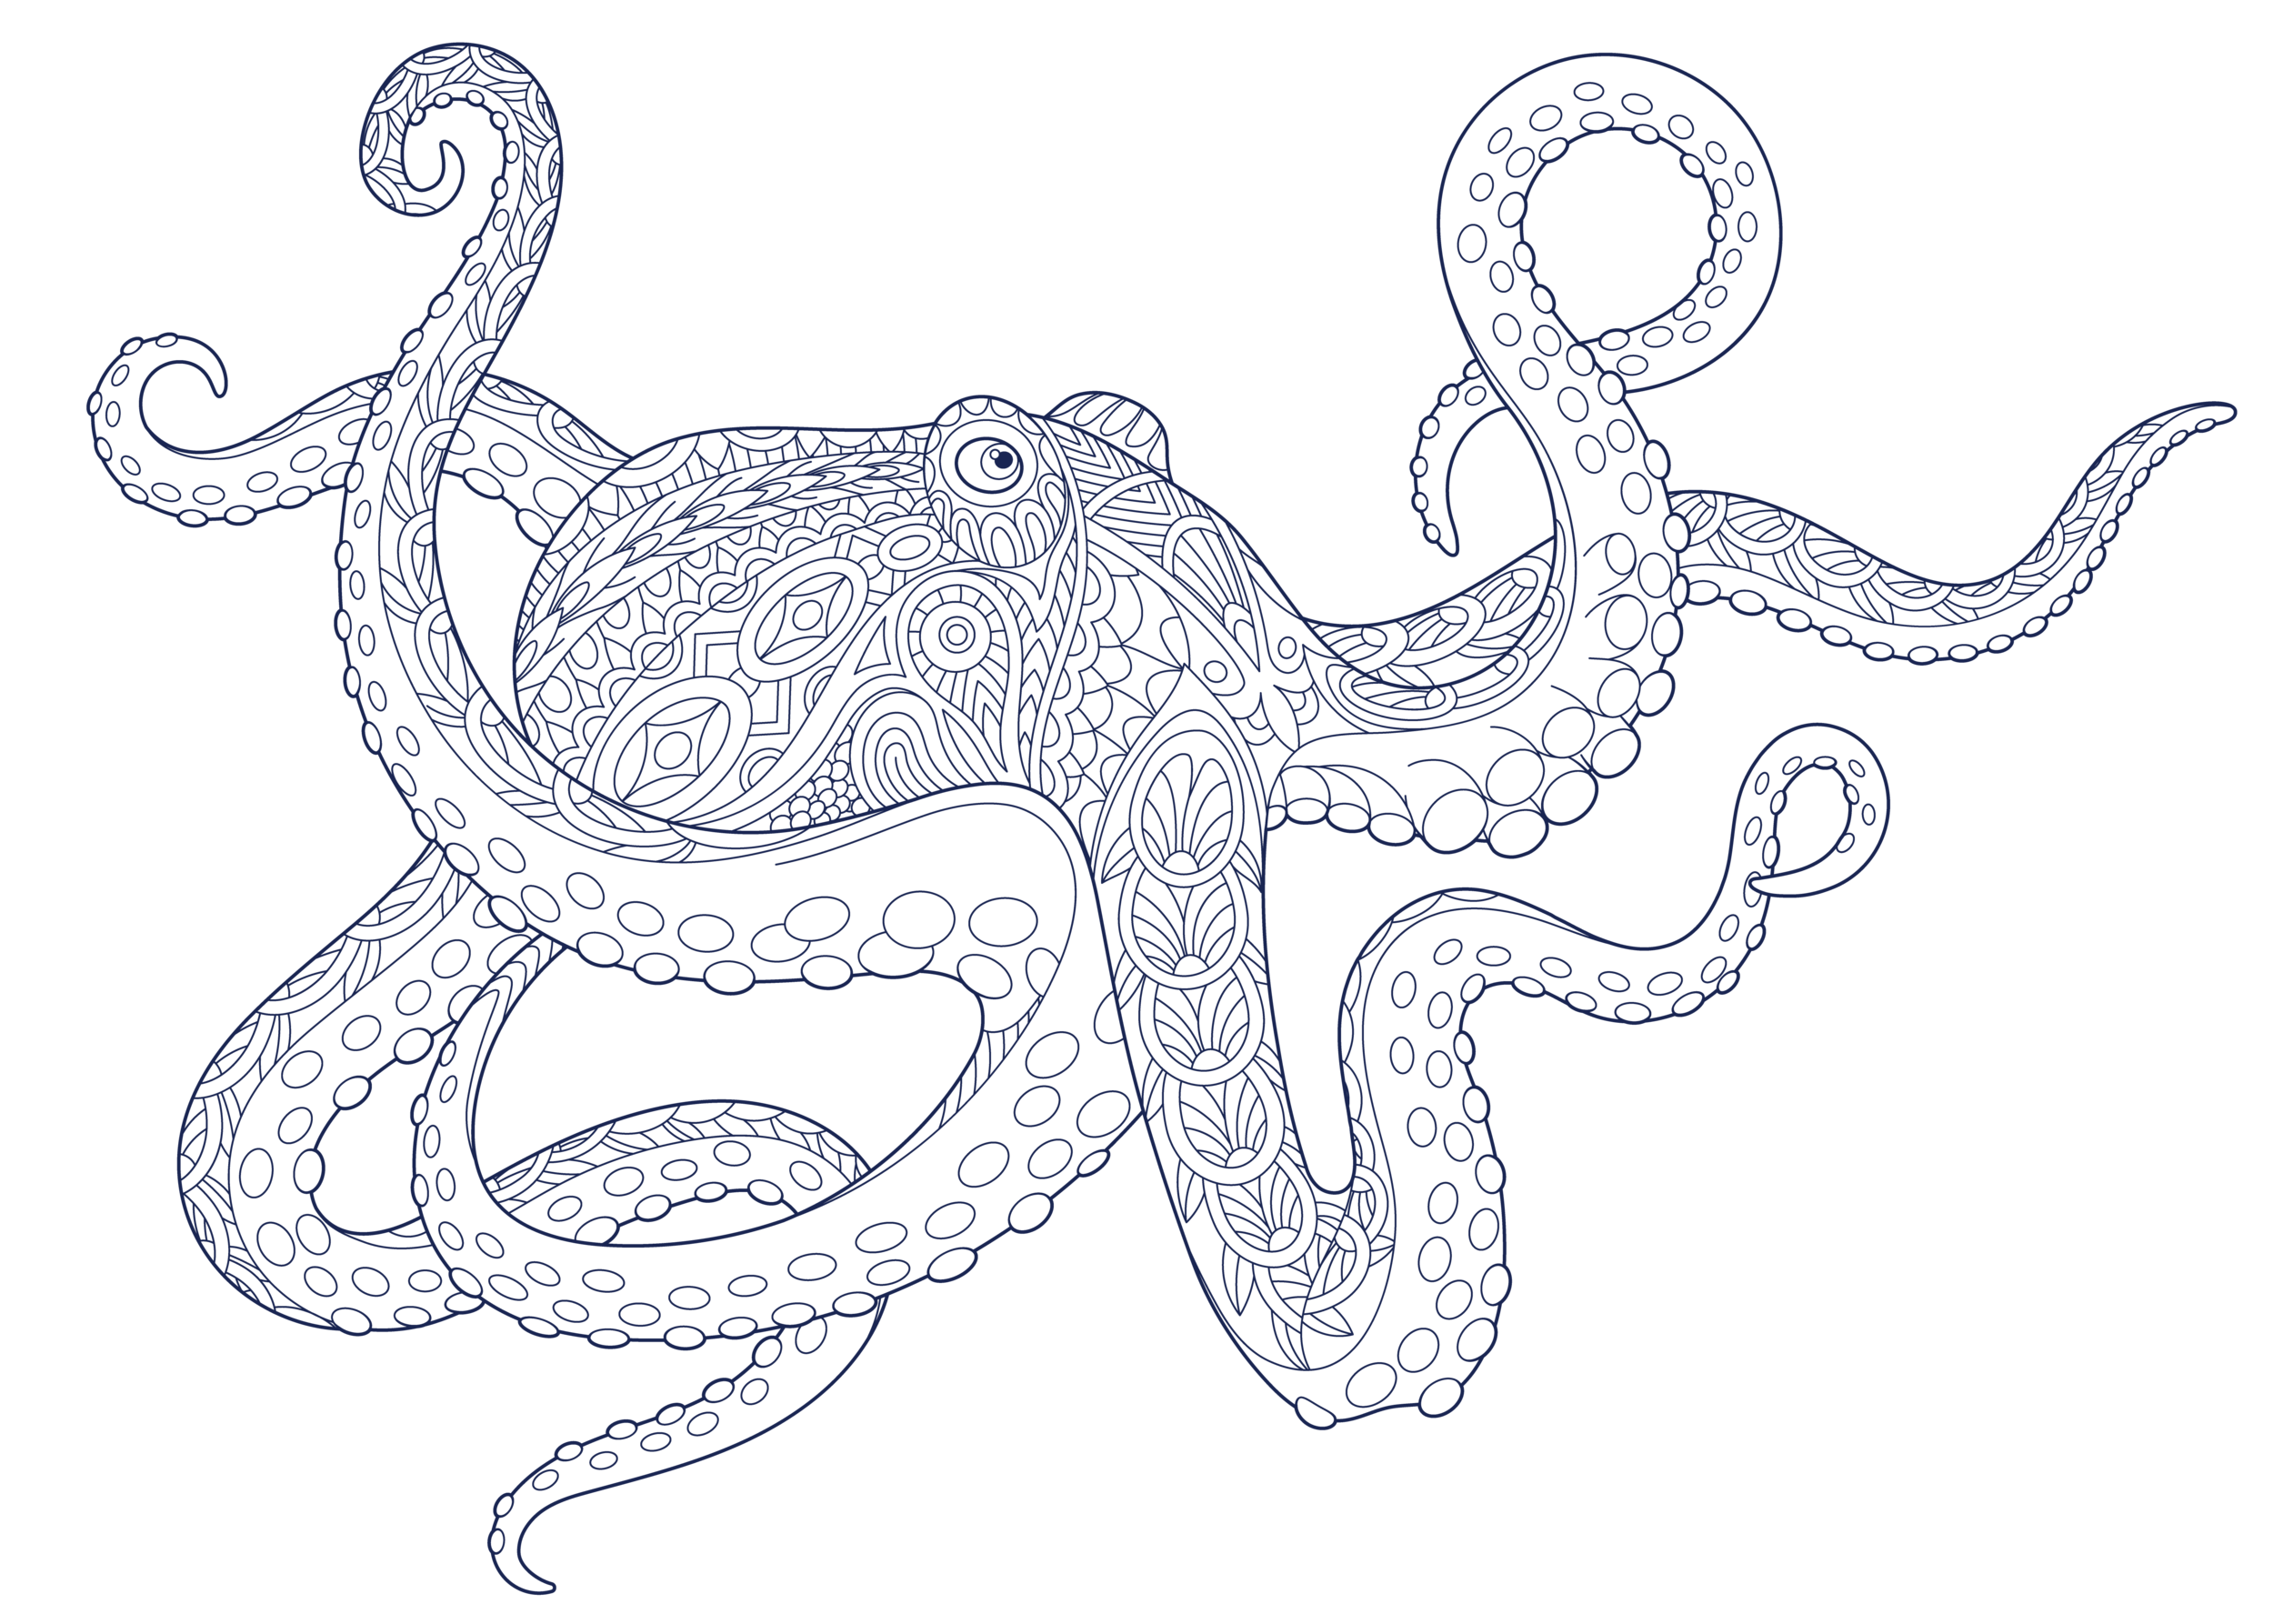 octopus_1.png